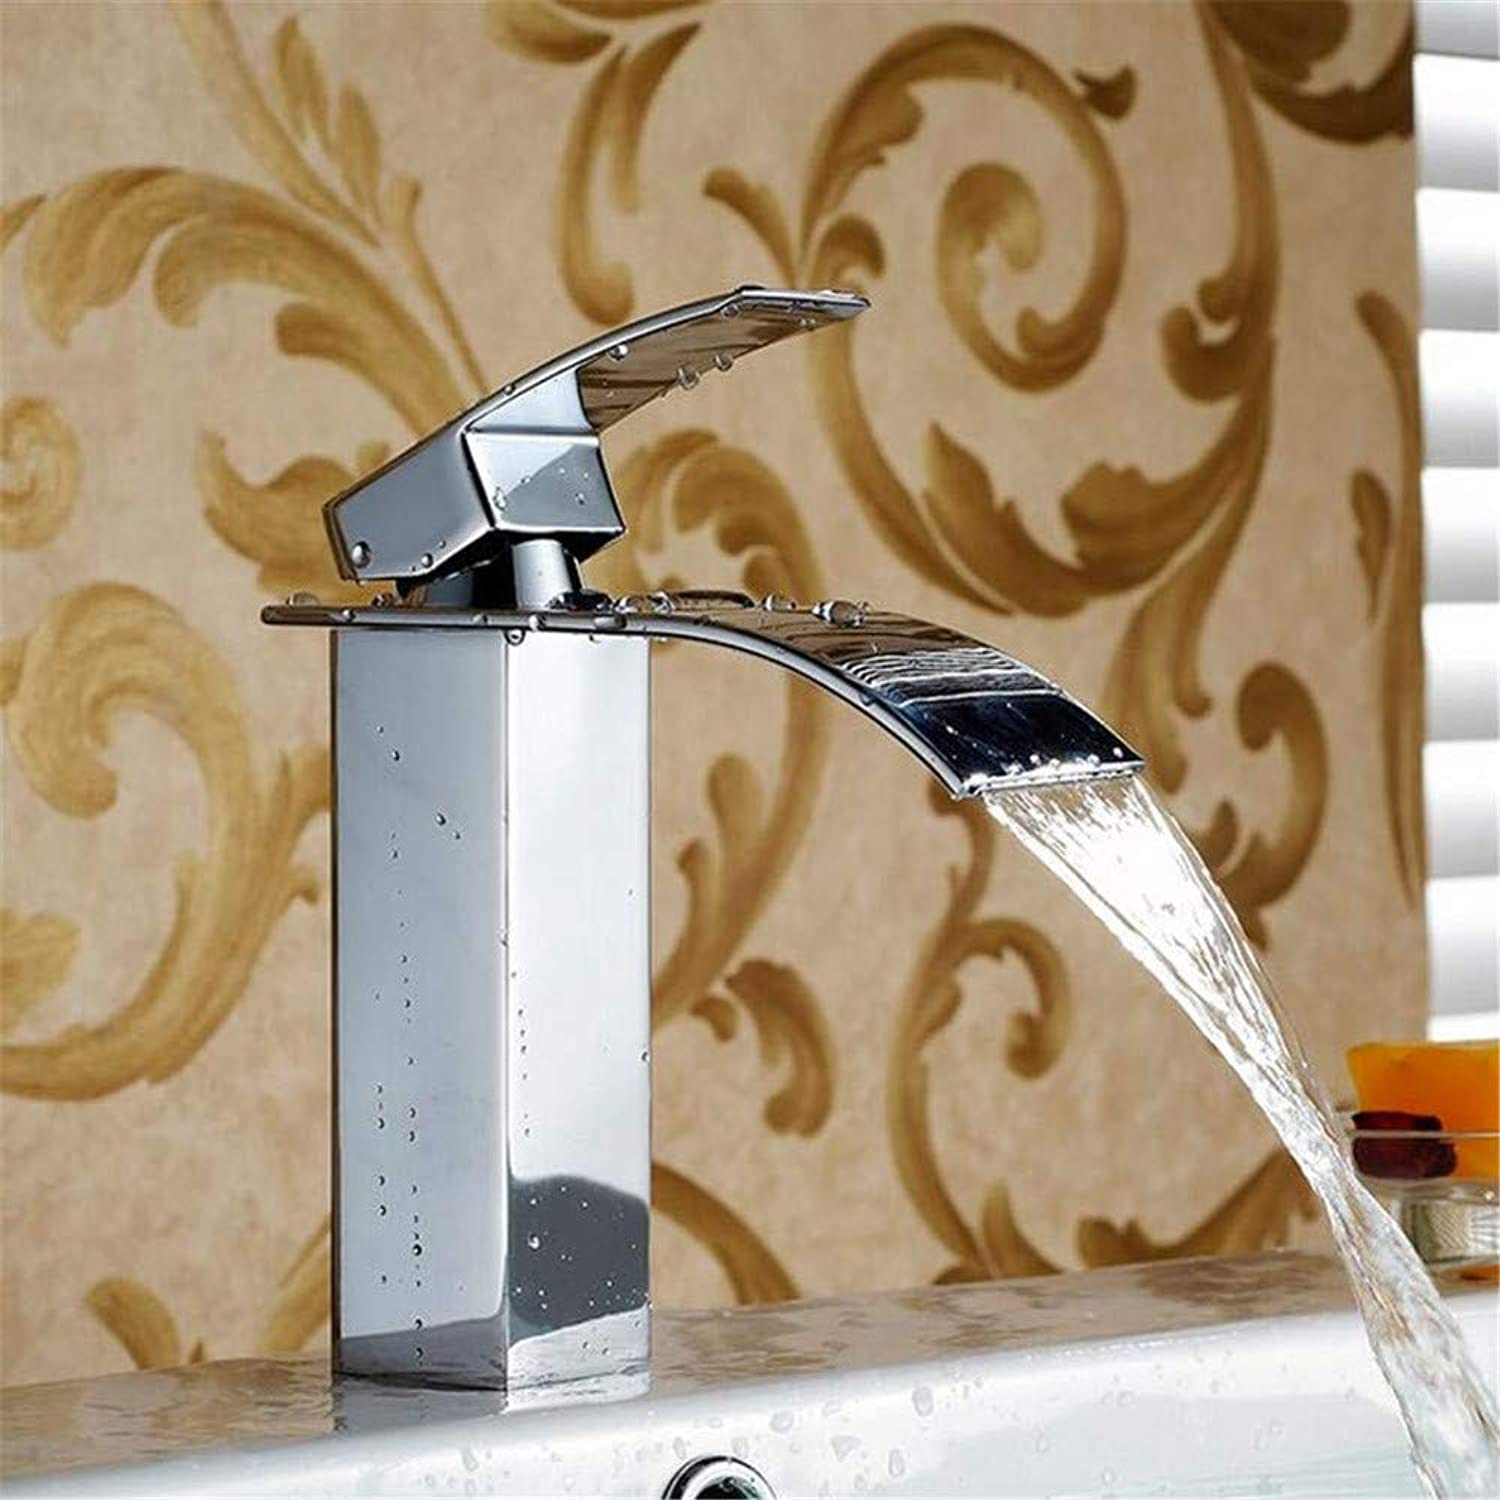 Brass Chrome Hot and Cold Water New Polished Basin Sink Waterfall Tap Single Lever Single Hole Deck Mounted Basin Waterfall Faucet